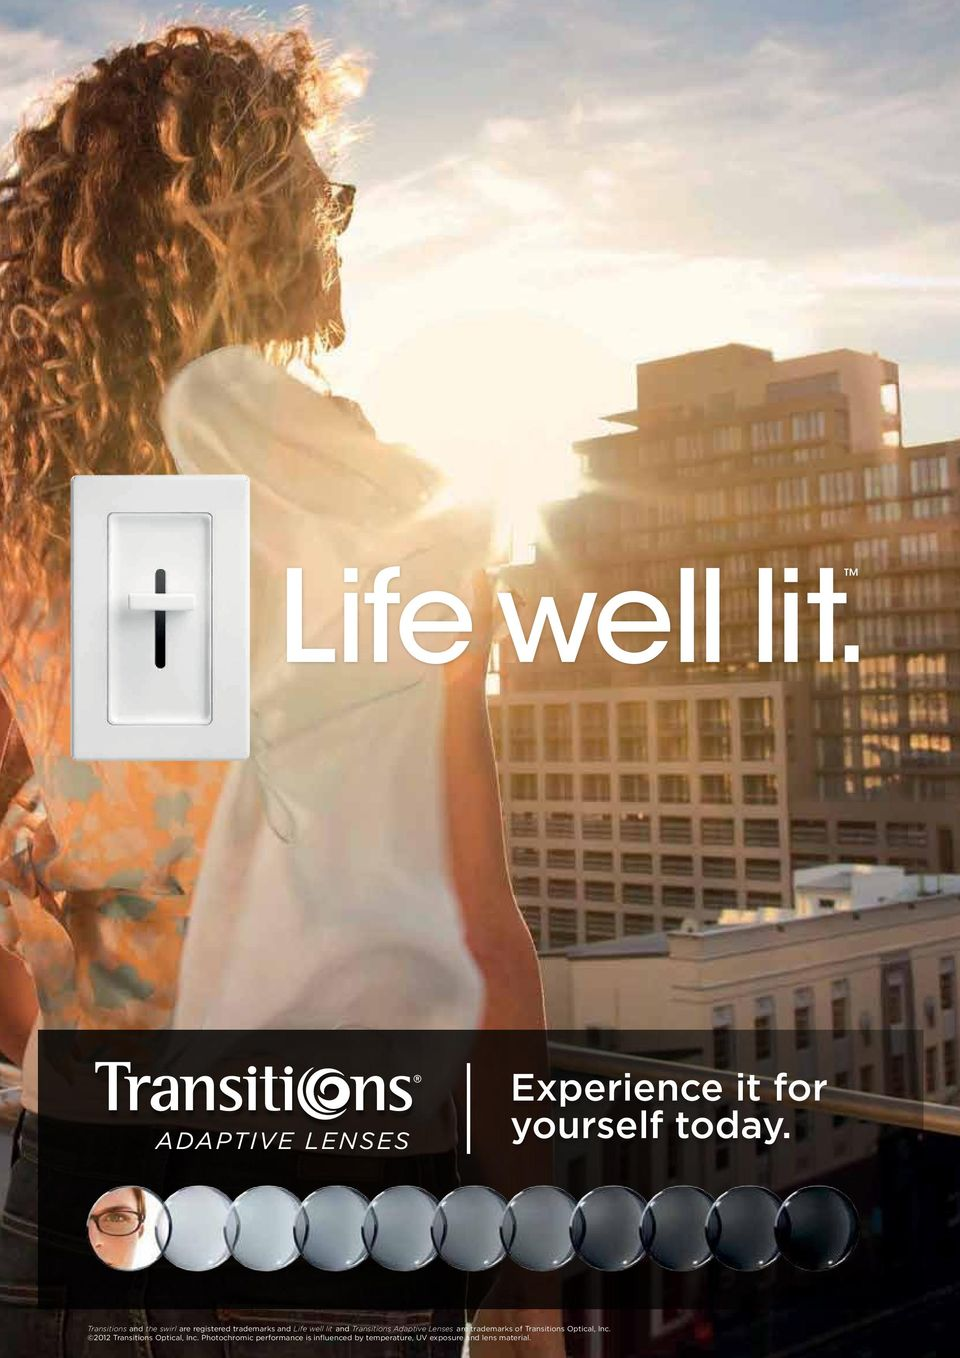 Transitions Adaptive Lenses are trademarks of Transitions Optical, Inc.